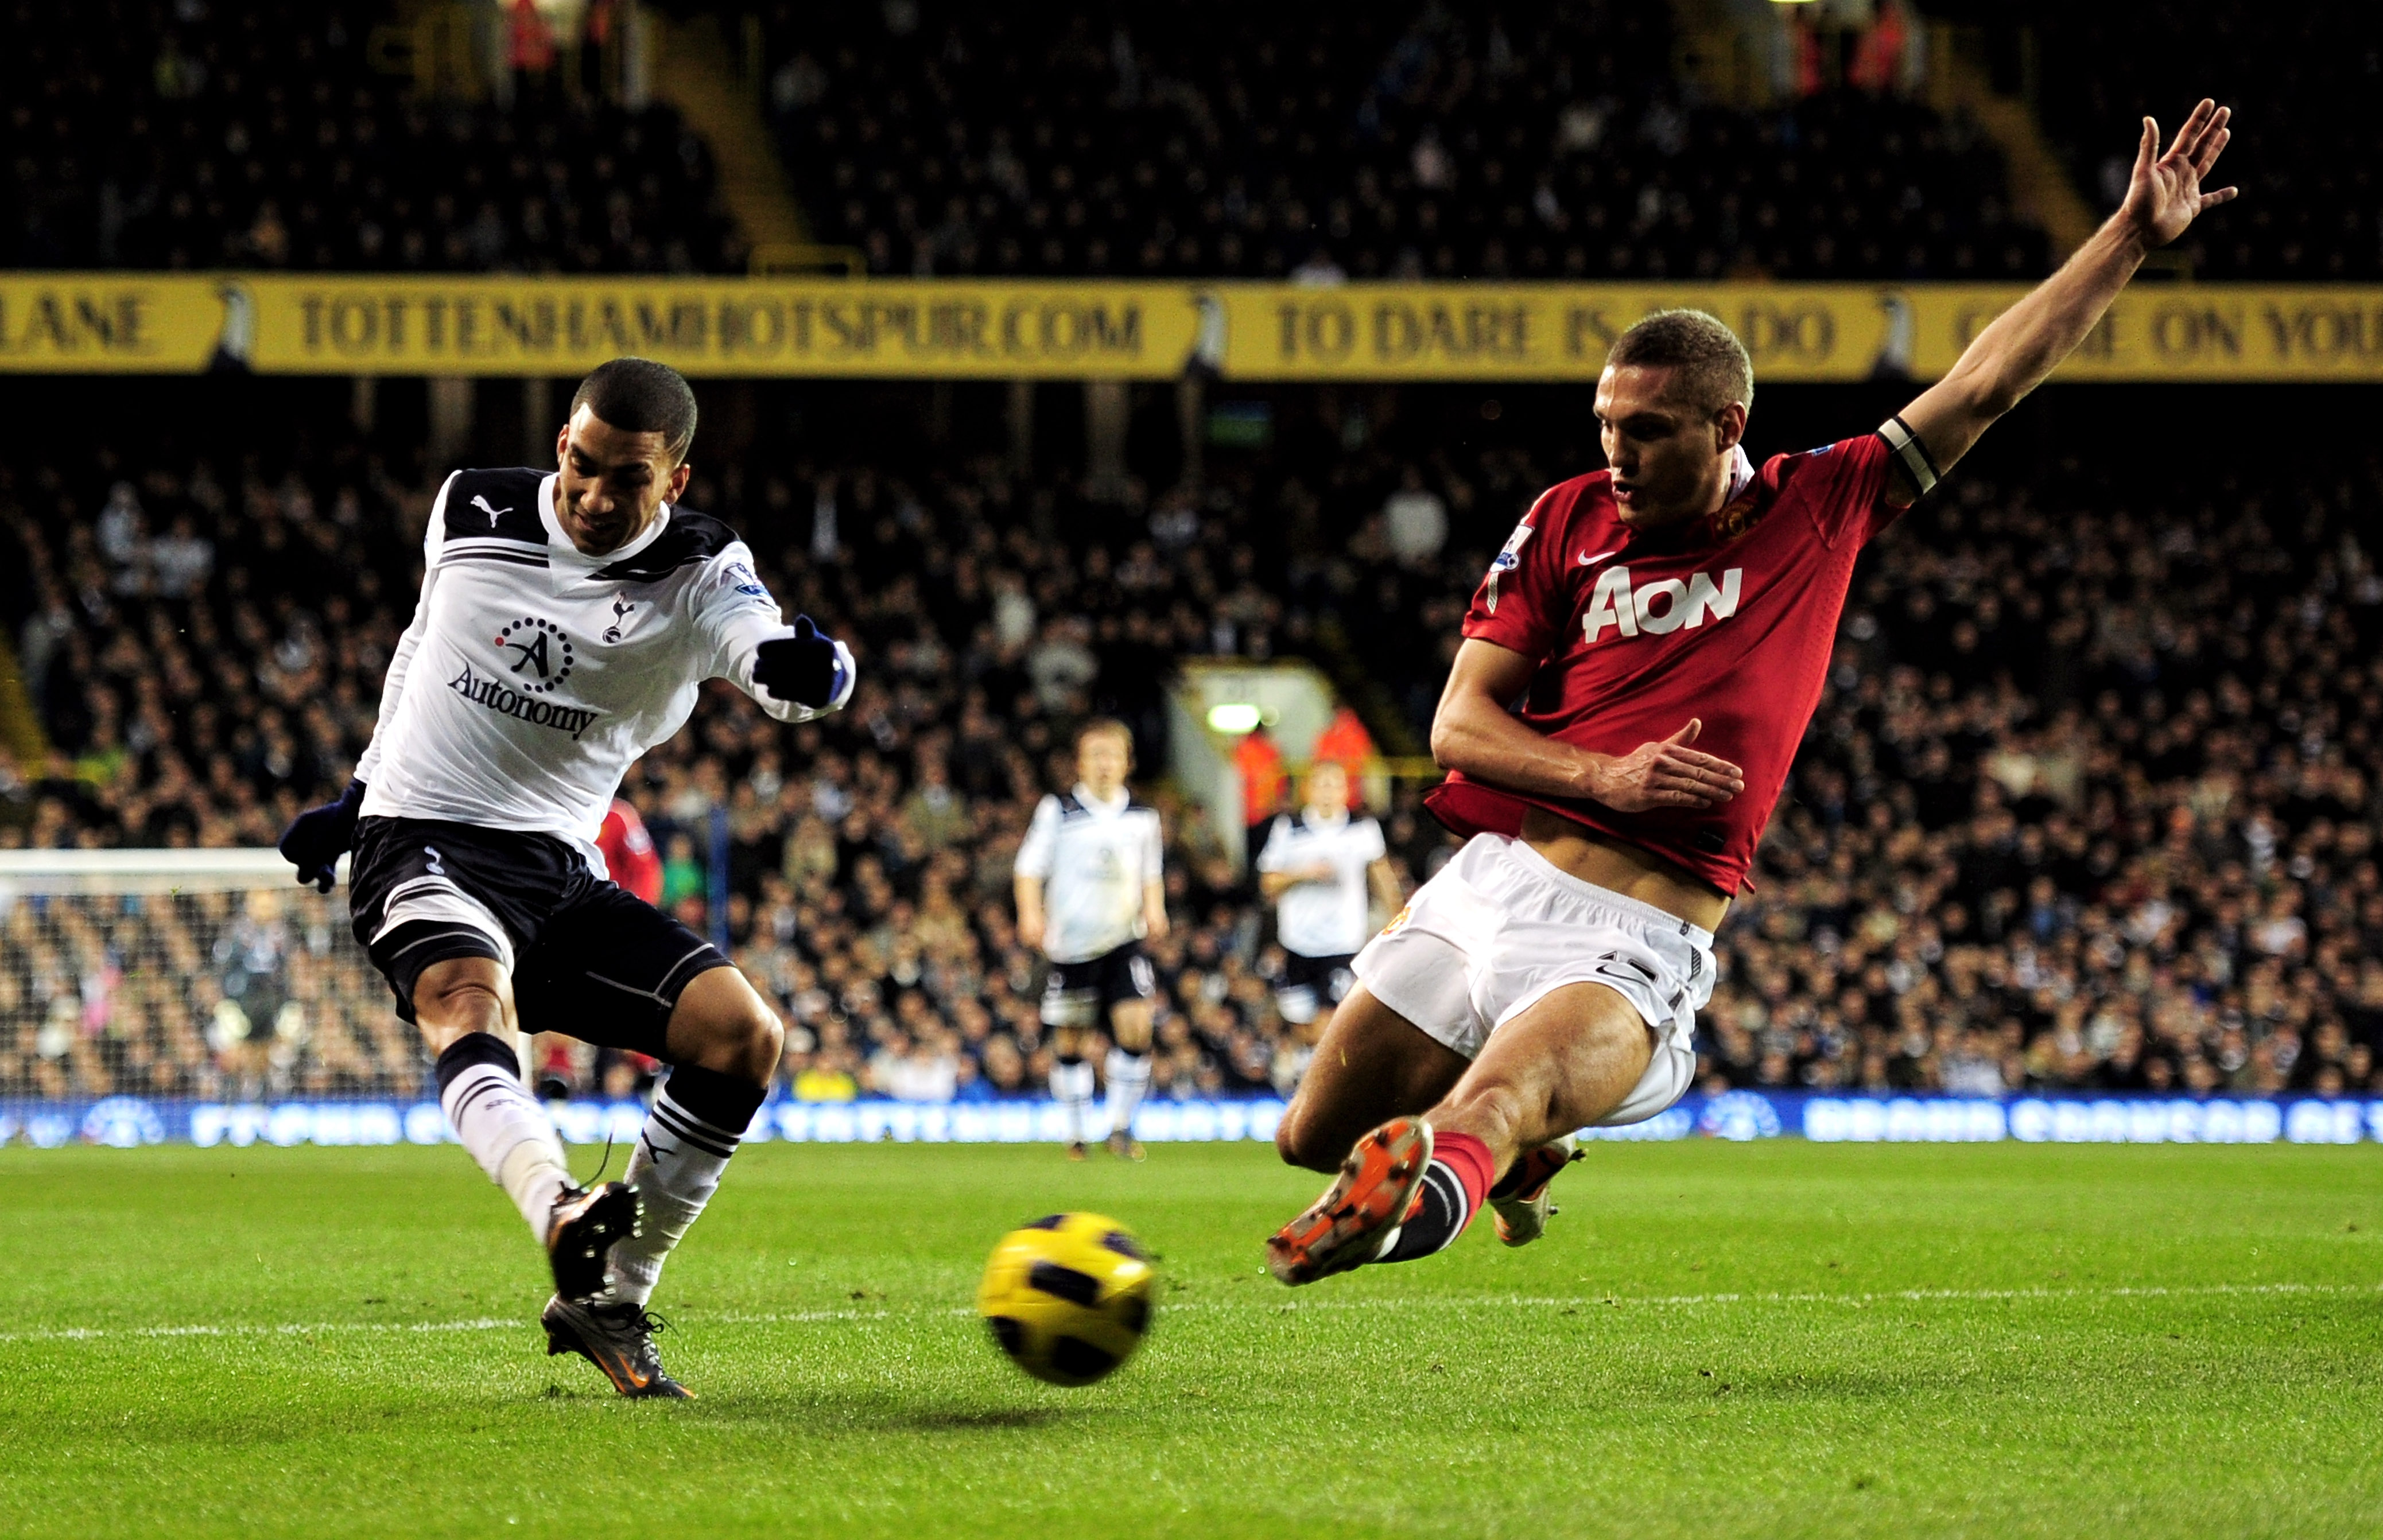 LONDON, ENGLAND - JANUARY 16:  Aaron Lennon of Spurs attempts to cross the ball as Nemanja Vidic of Manchester United closes in during the Barclays Premier League match between Tottenham Hotspur and Manchester United at White Hart Lane on January 16, 2011